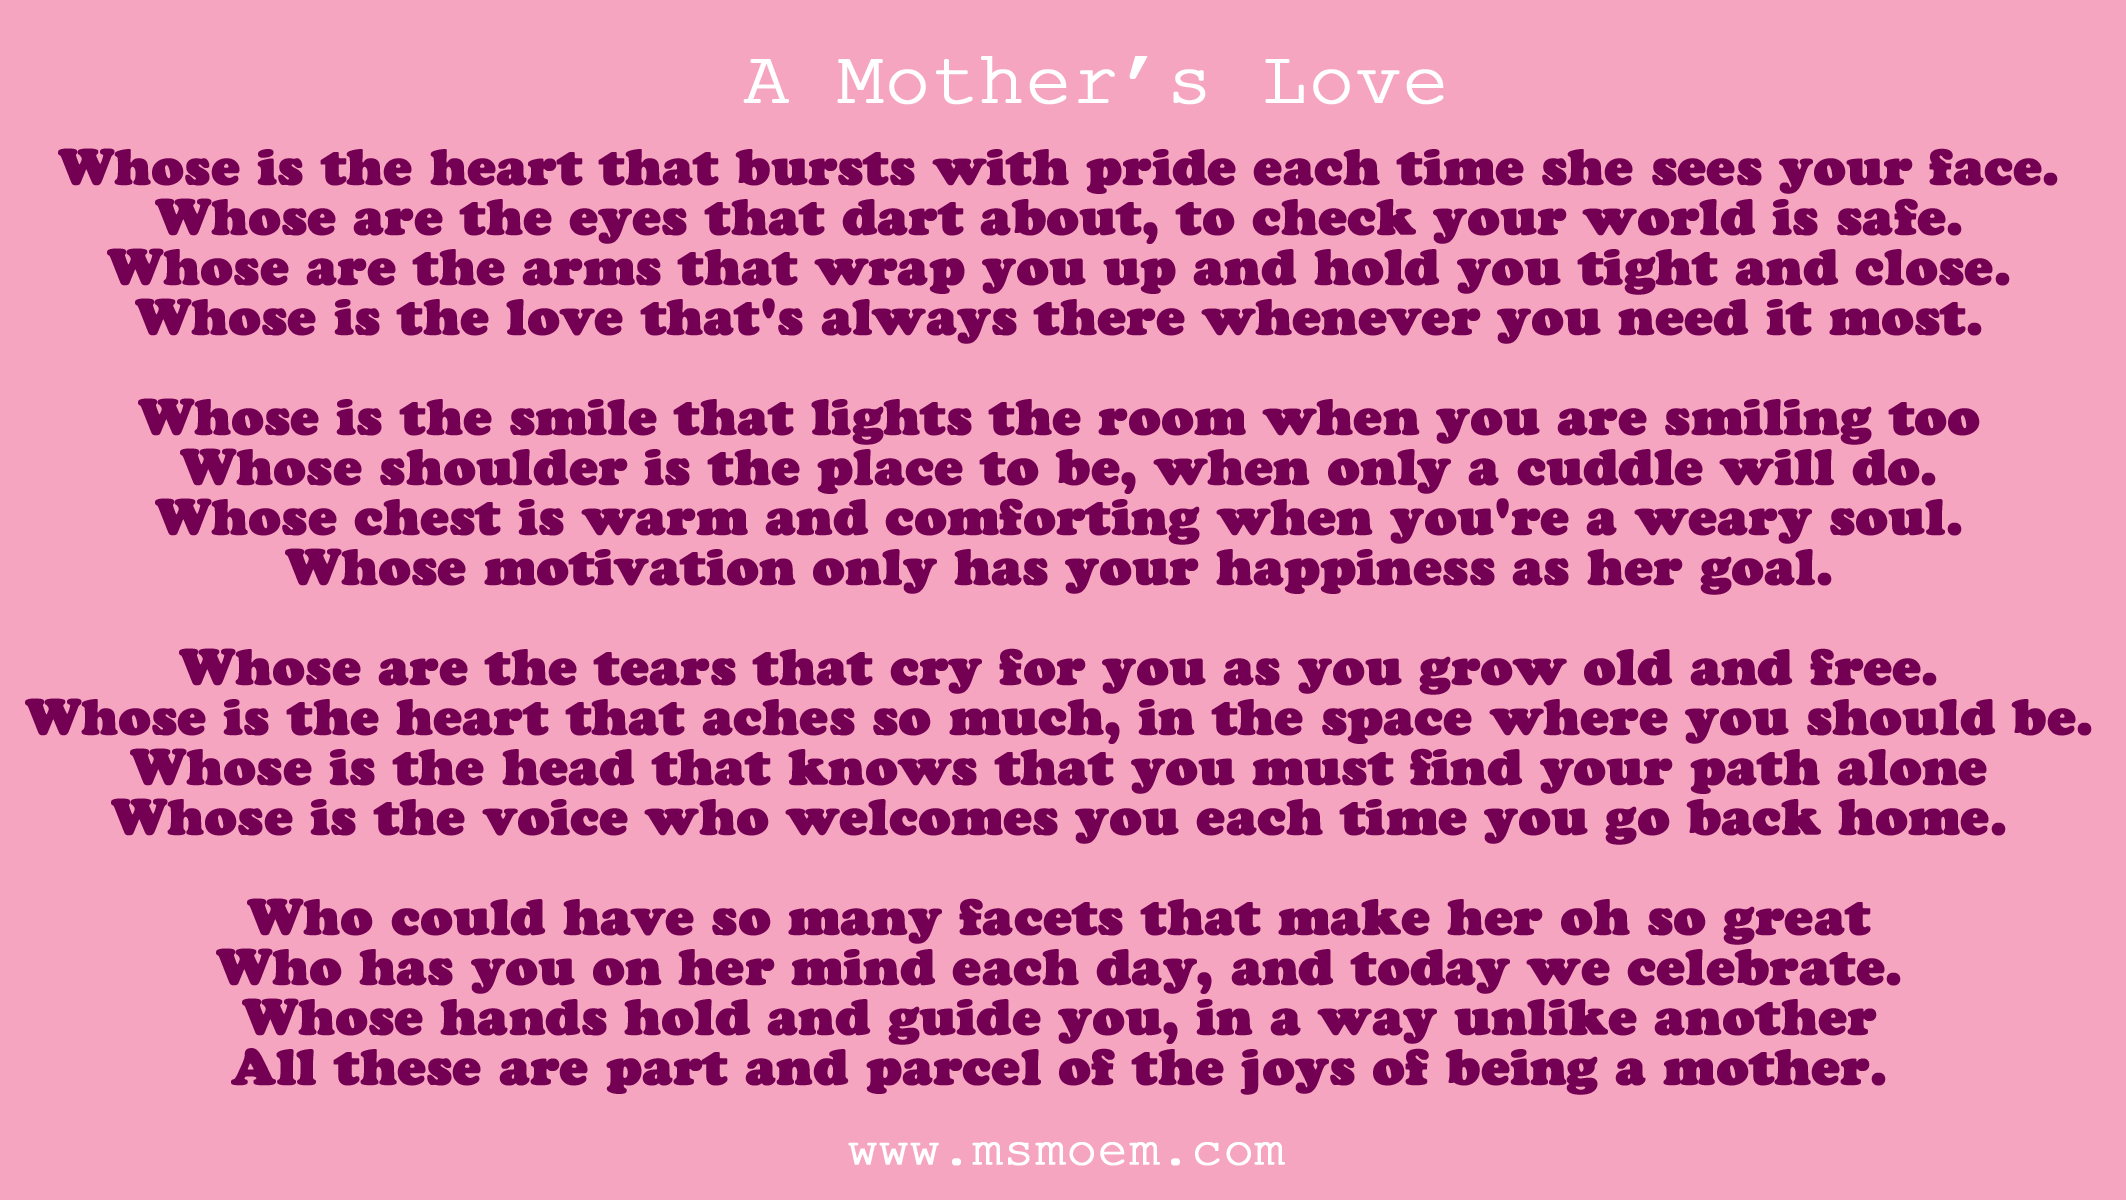 Missing Mother Poem http://msmoem.com/2012/poetry-2/mothers-day-poem-a-mothers-love-by-ms-moem/